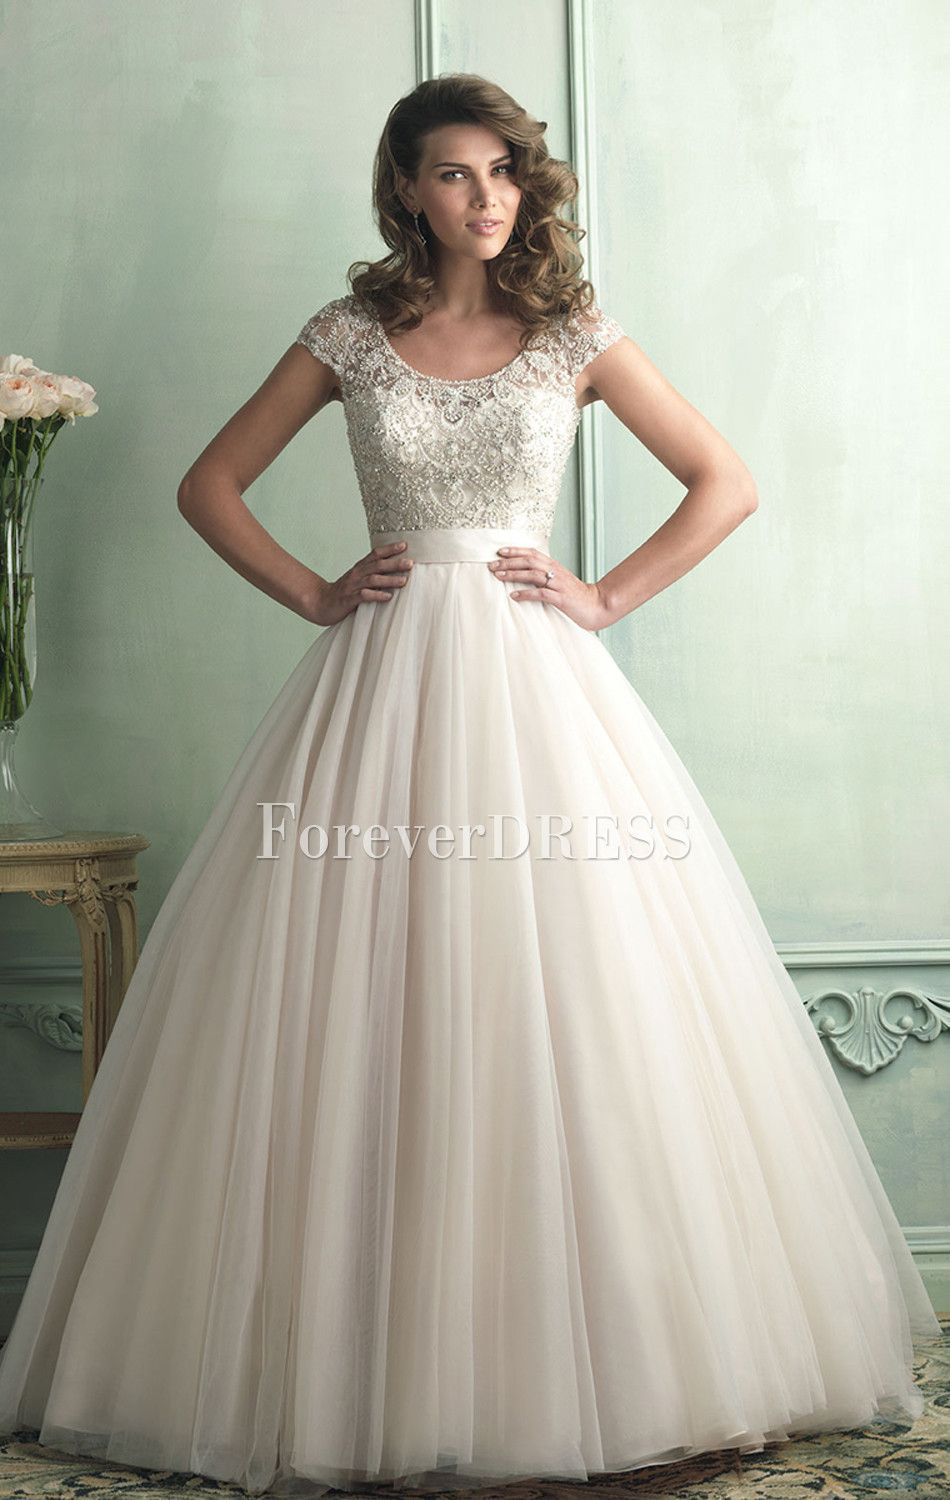 Elegant ivory organza ball gown delicate beaded wedding dress with elegant ivory organza ball gown delicate beaded wedding dress with short sleeves ombrellifo Choice Image